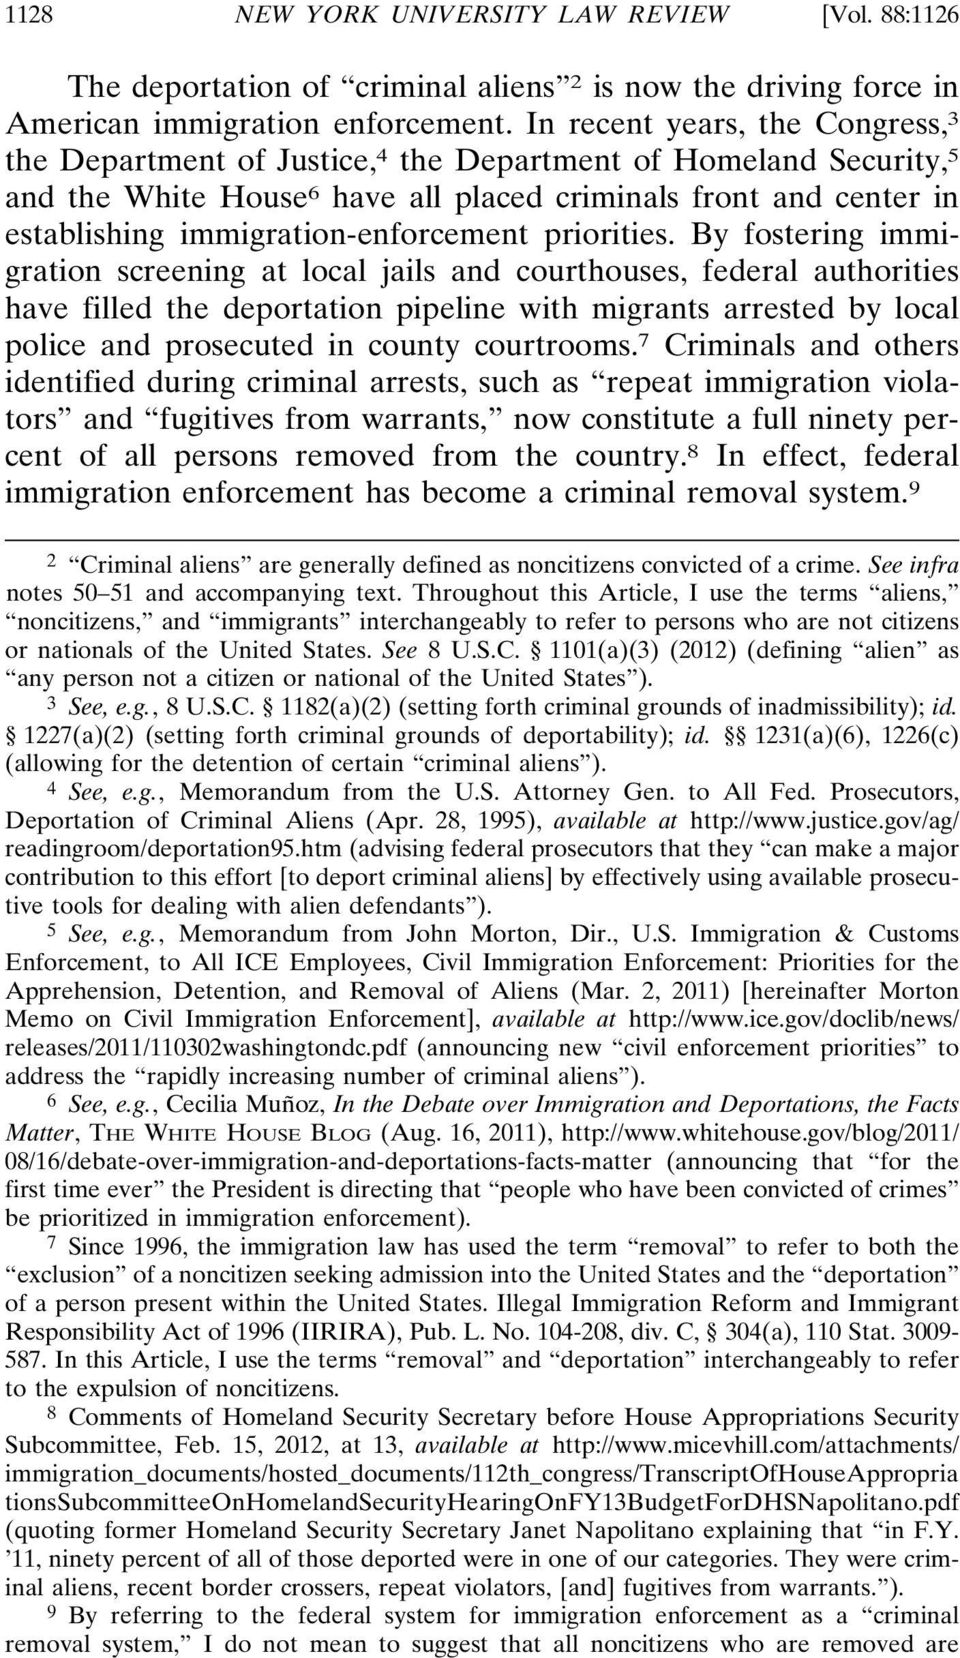 immigration-enforcement priorities.